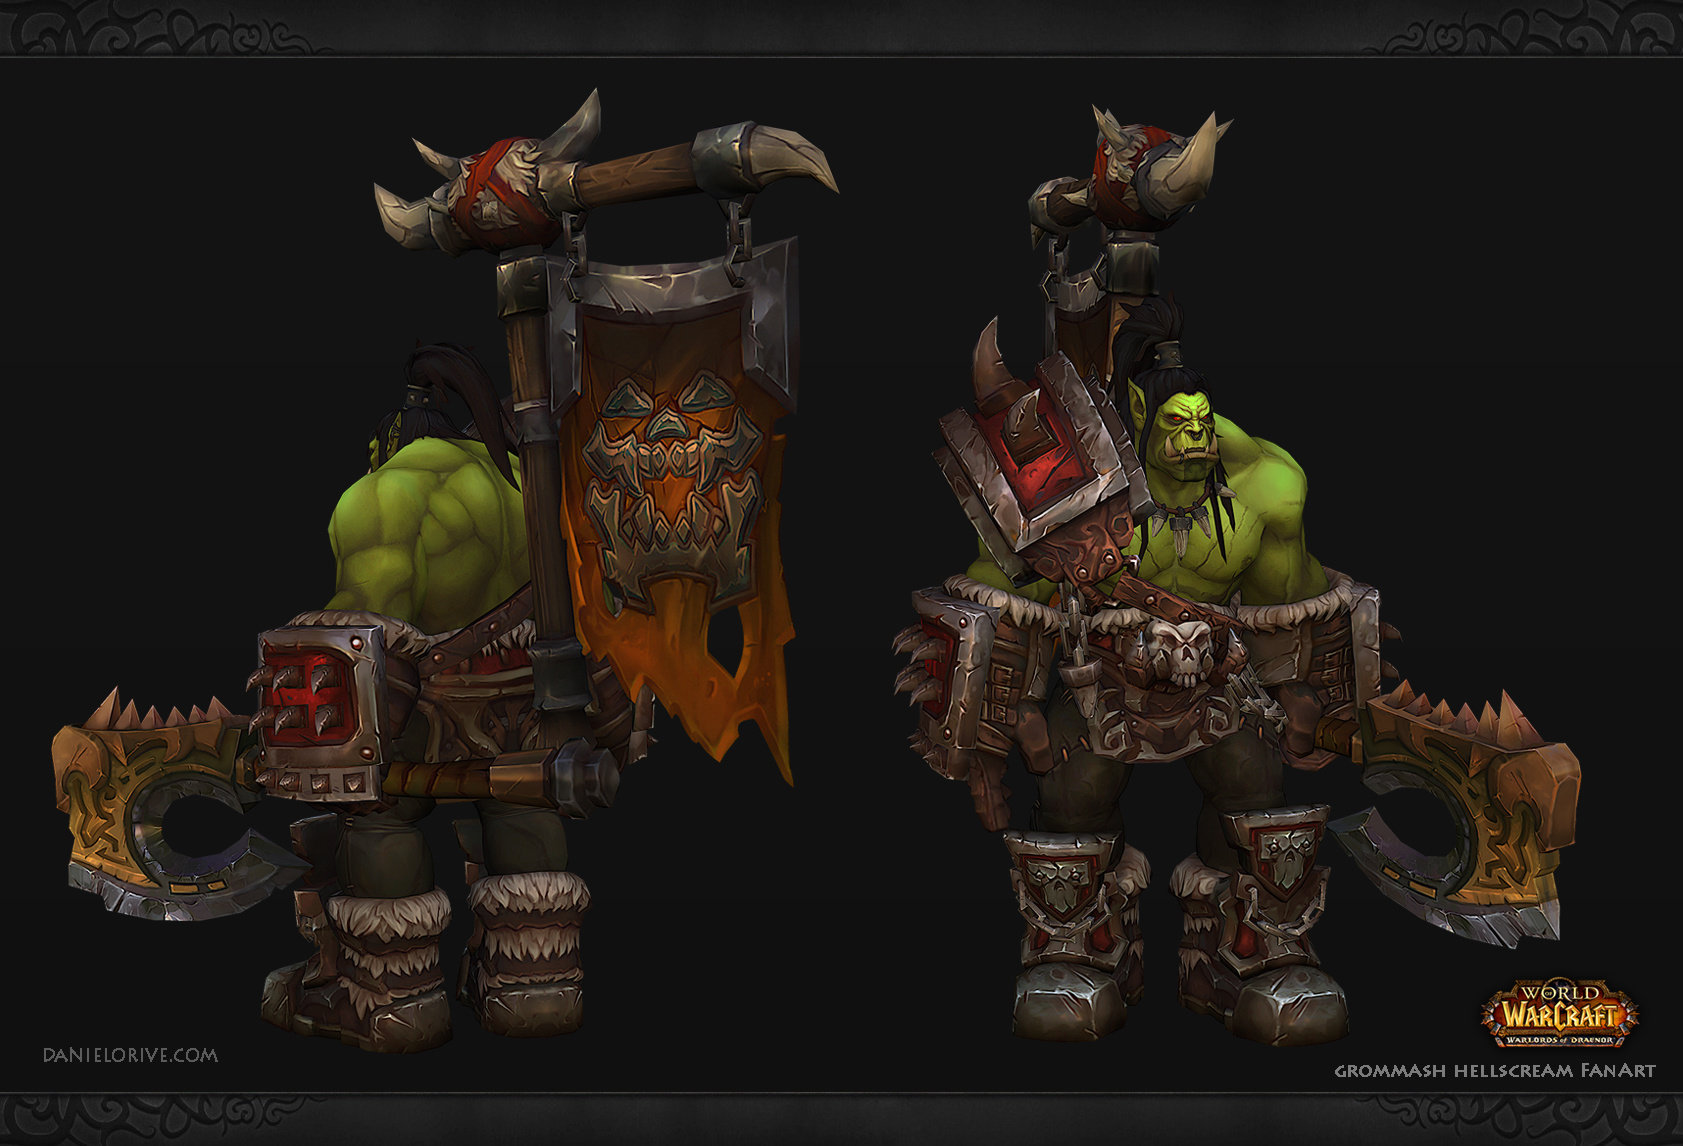 World of Warcraft Fan Art - Grommash Hellscream